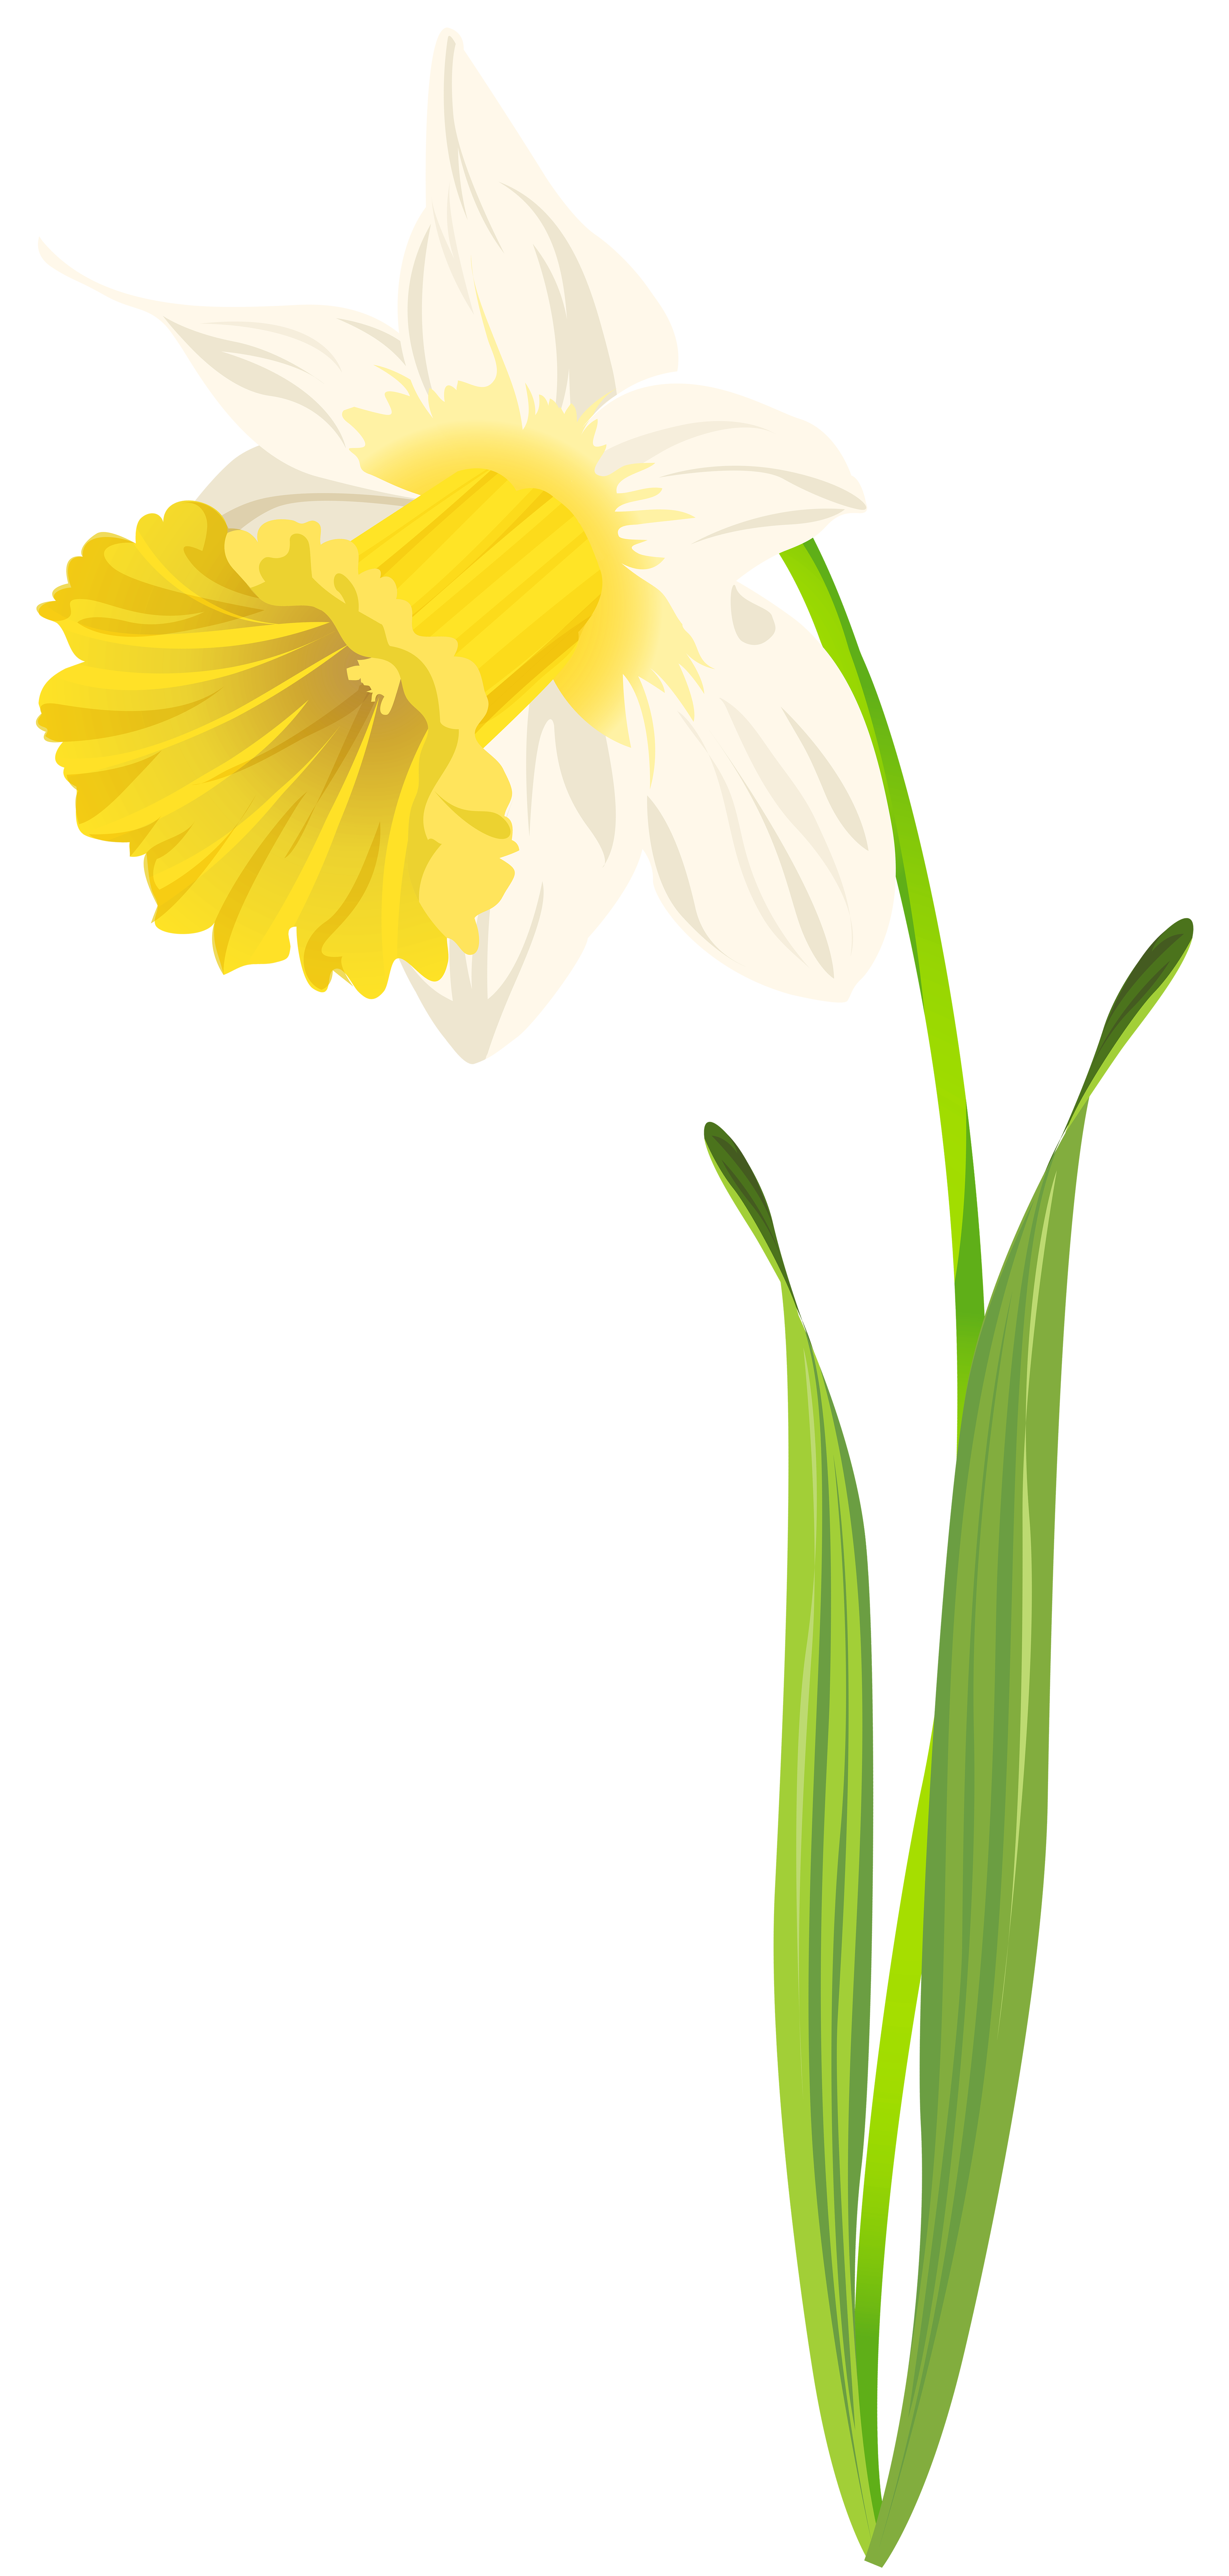 black and white download Png clip art image. Daffodil clipart